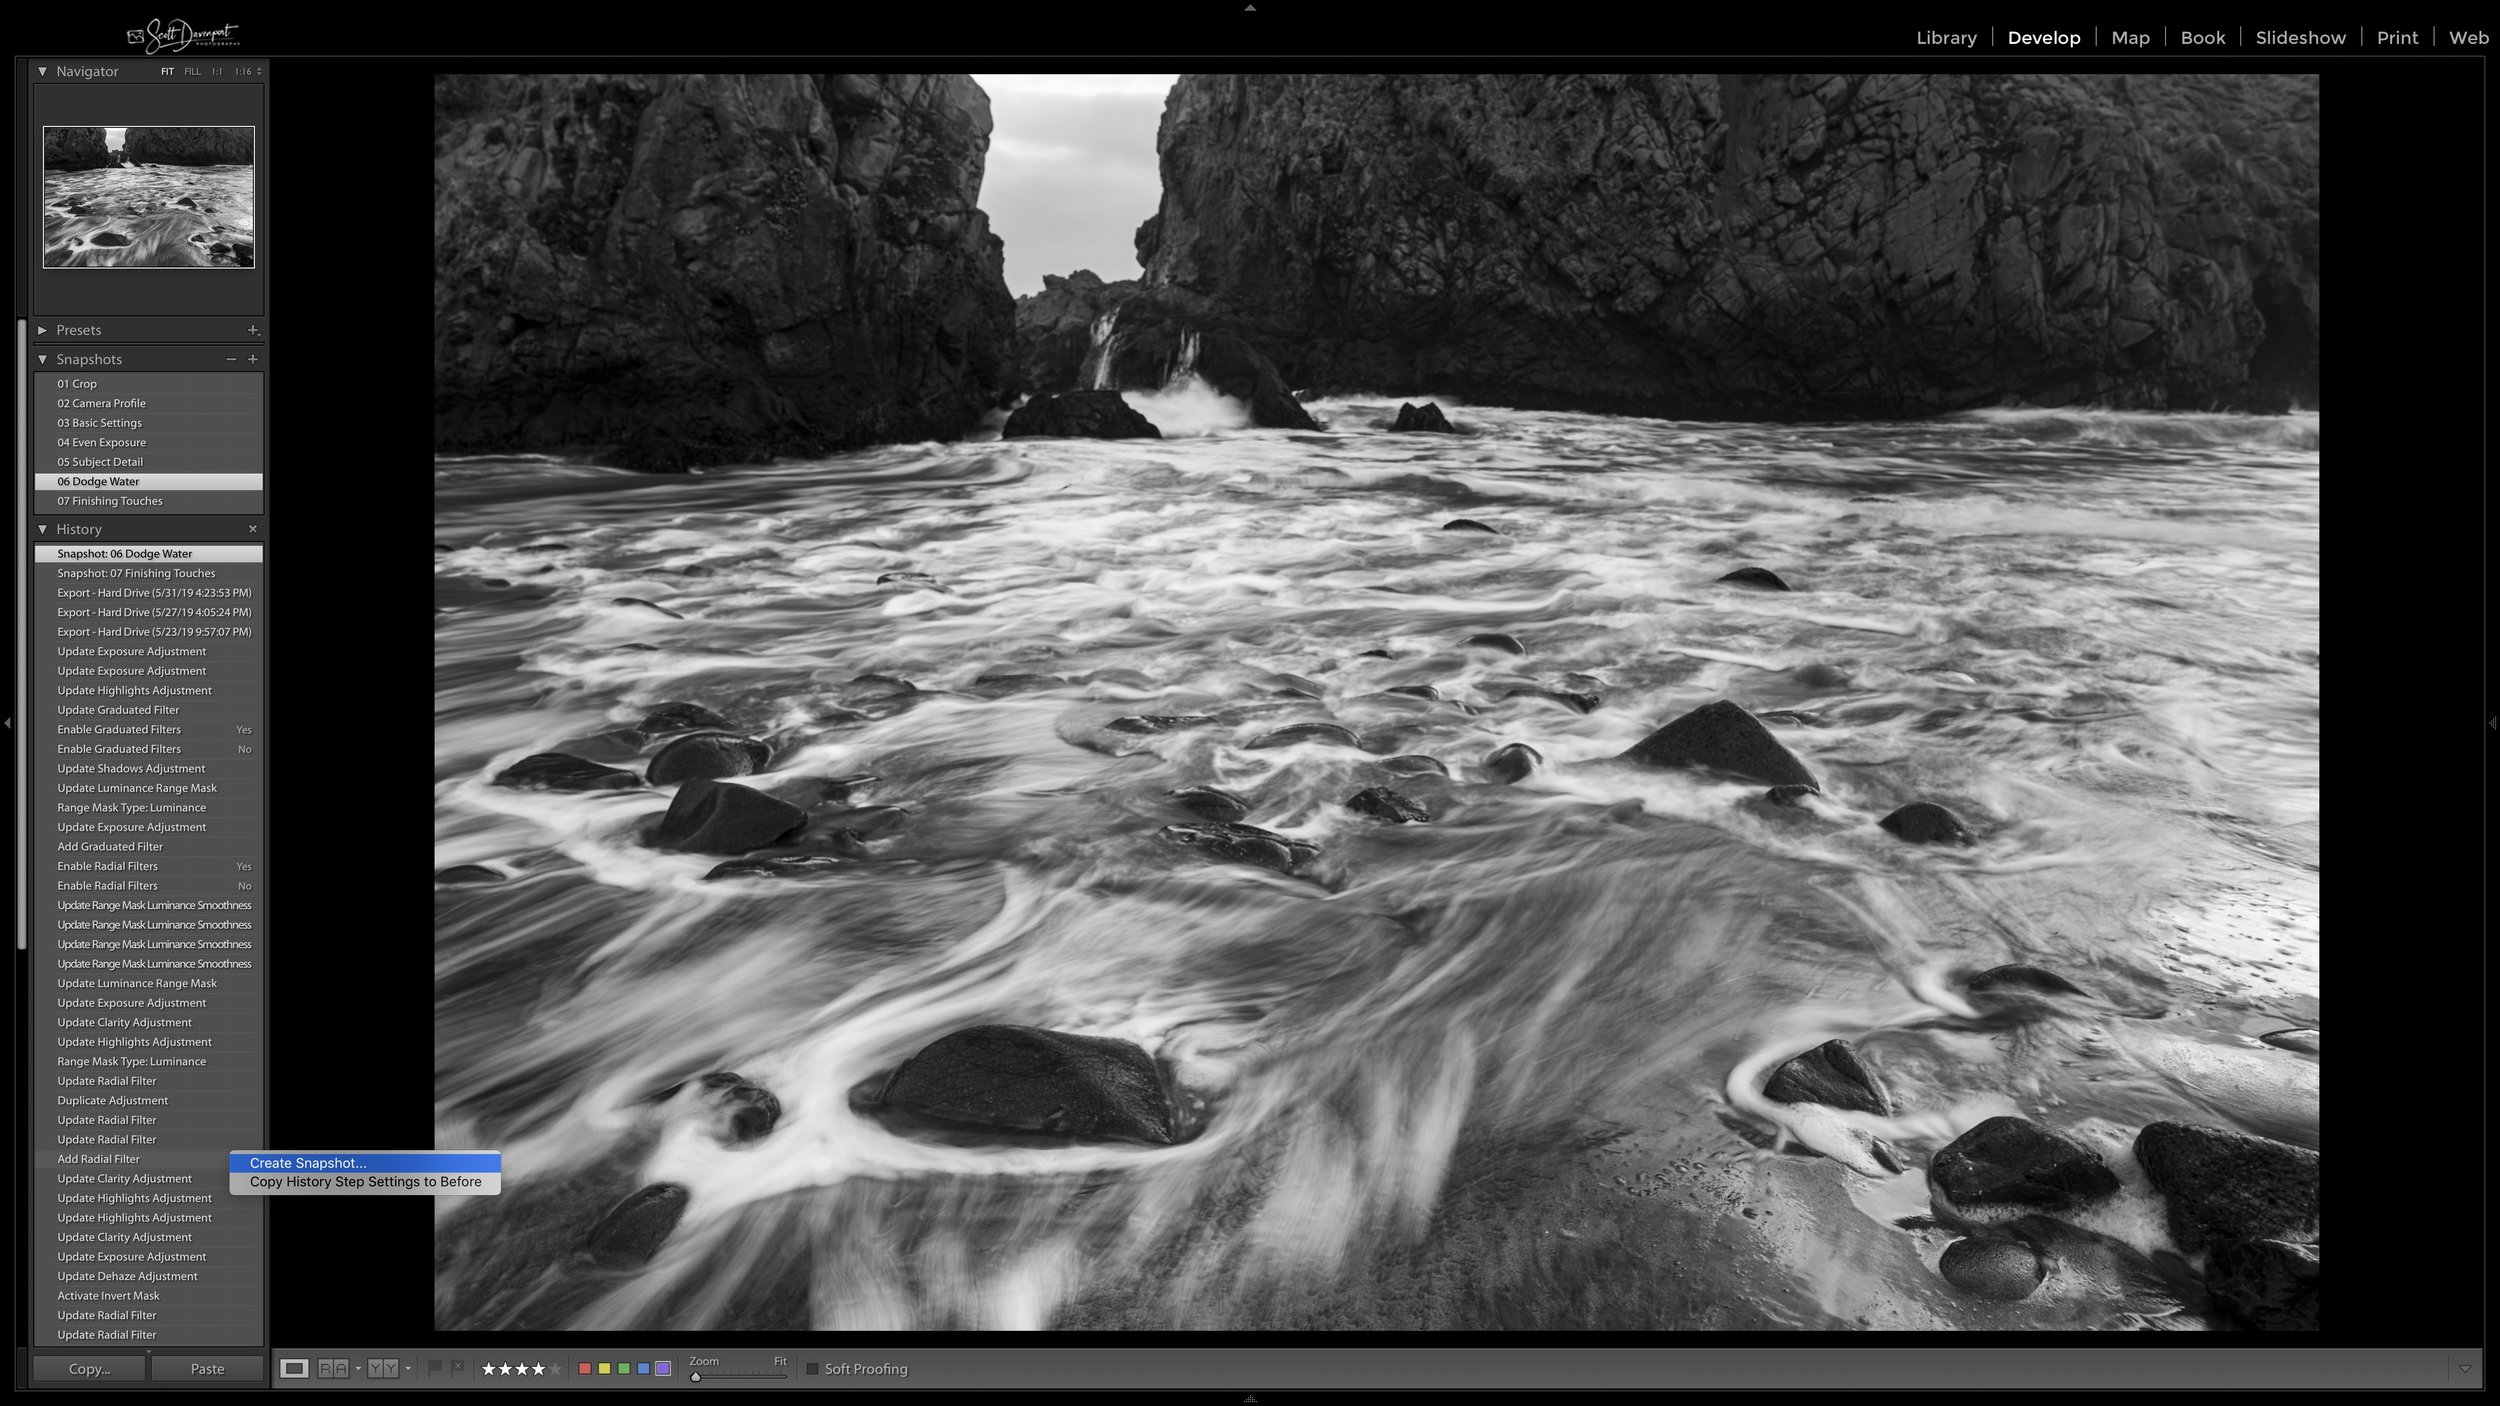 Creating a snapshot from the editing history in Lightroom